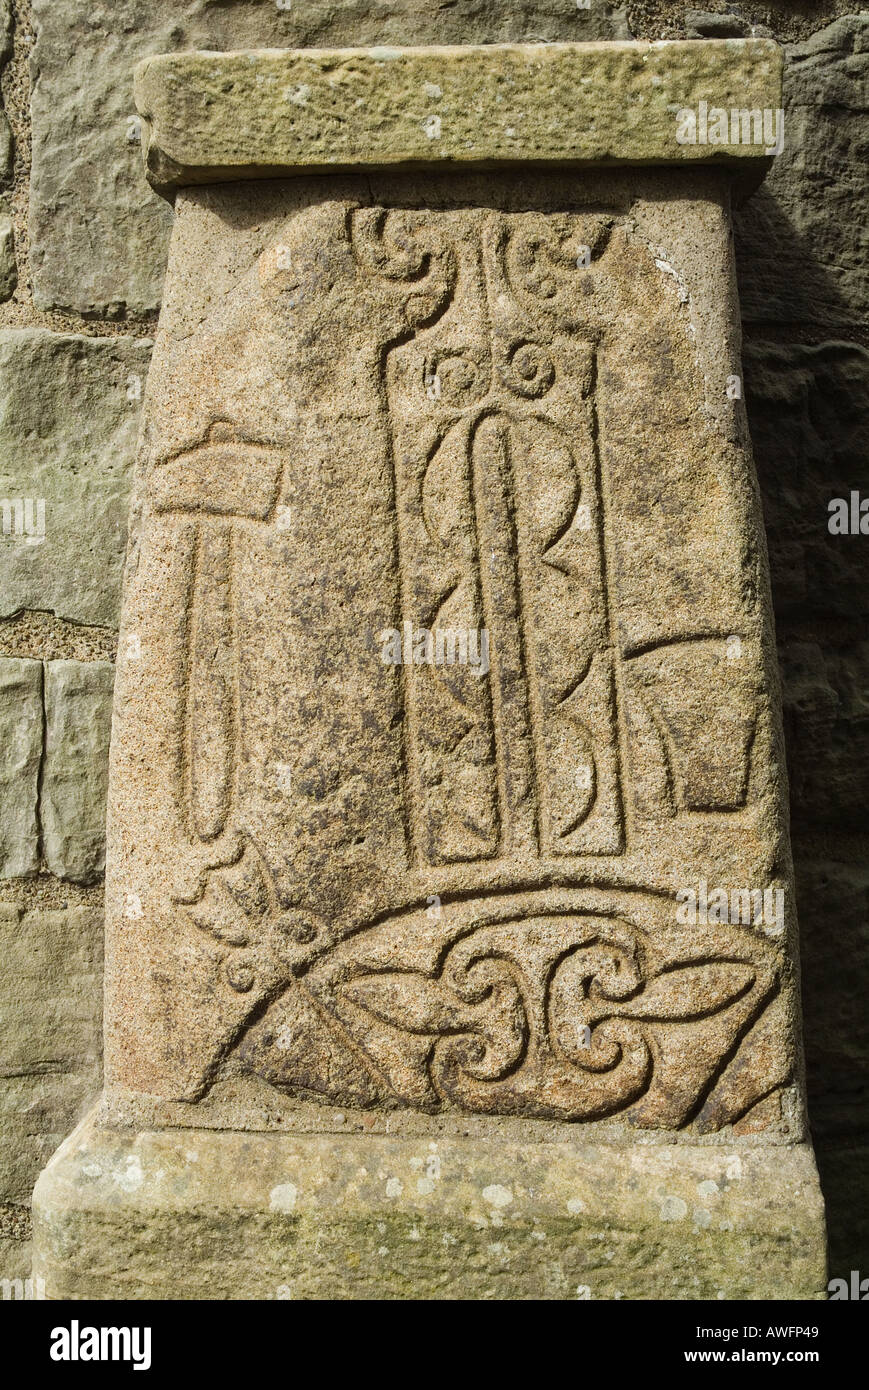 dh Pictish art carving ABERNETHY PERTHSHIRE SCOTLAND On stone at foot of 11st century Irish celtic round tower pict symbol Stock Photo